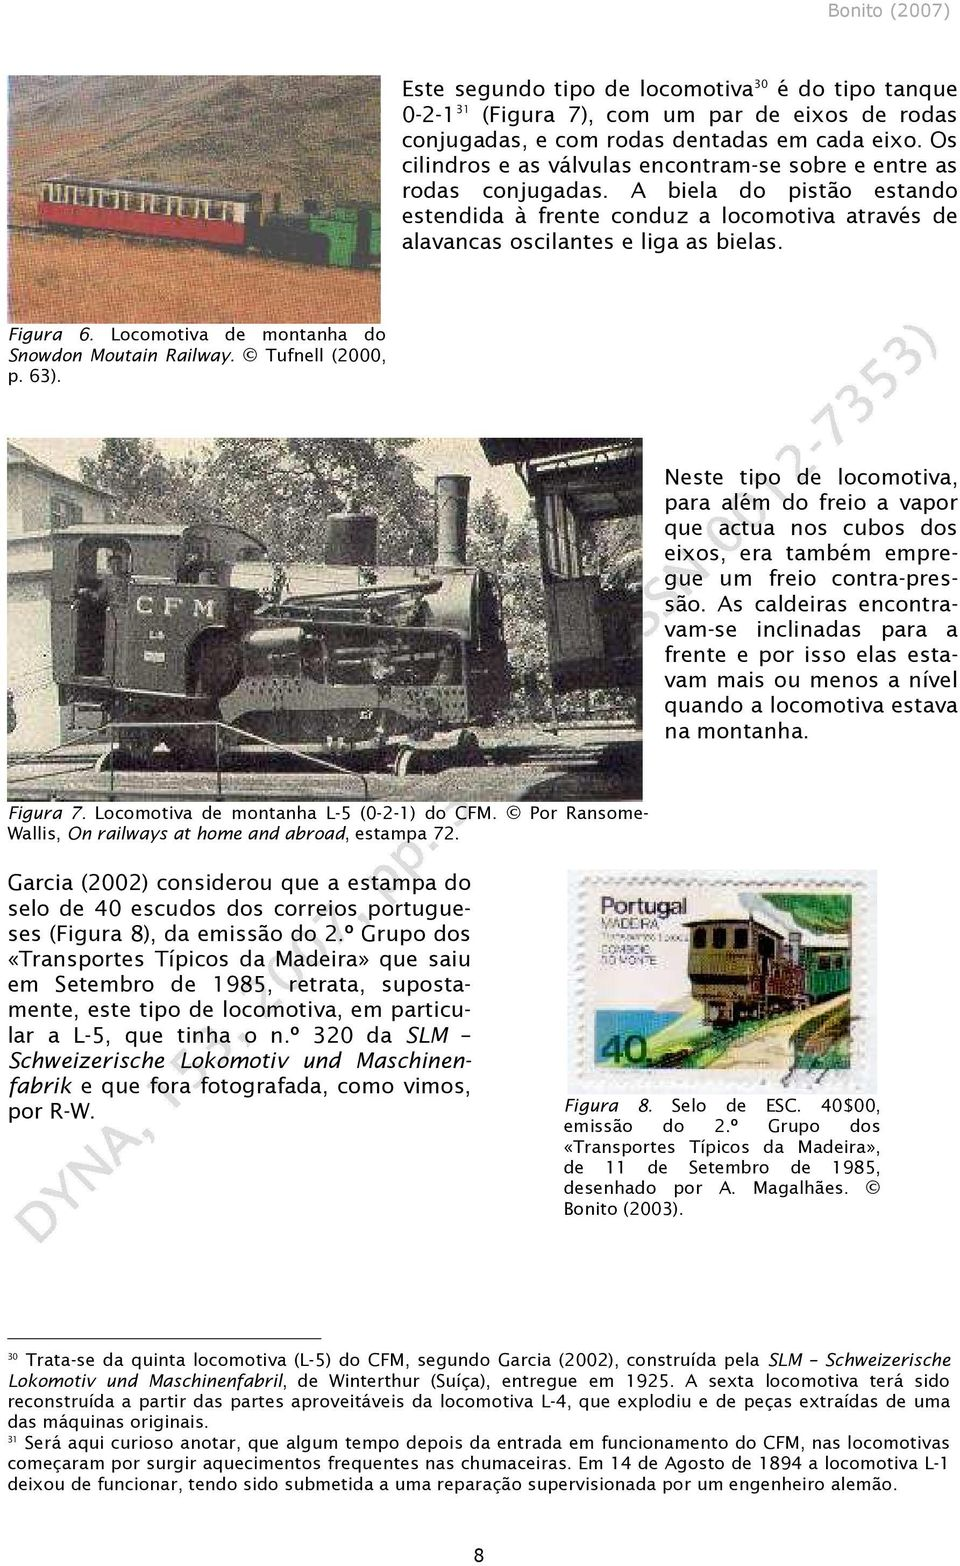 Locomotiva de montanha do Snowdon Moutain Railway. Tufnell (2000, p. 63).